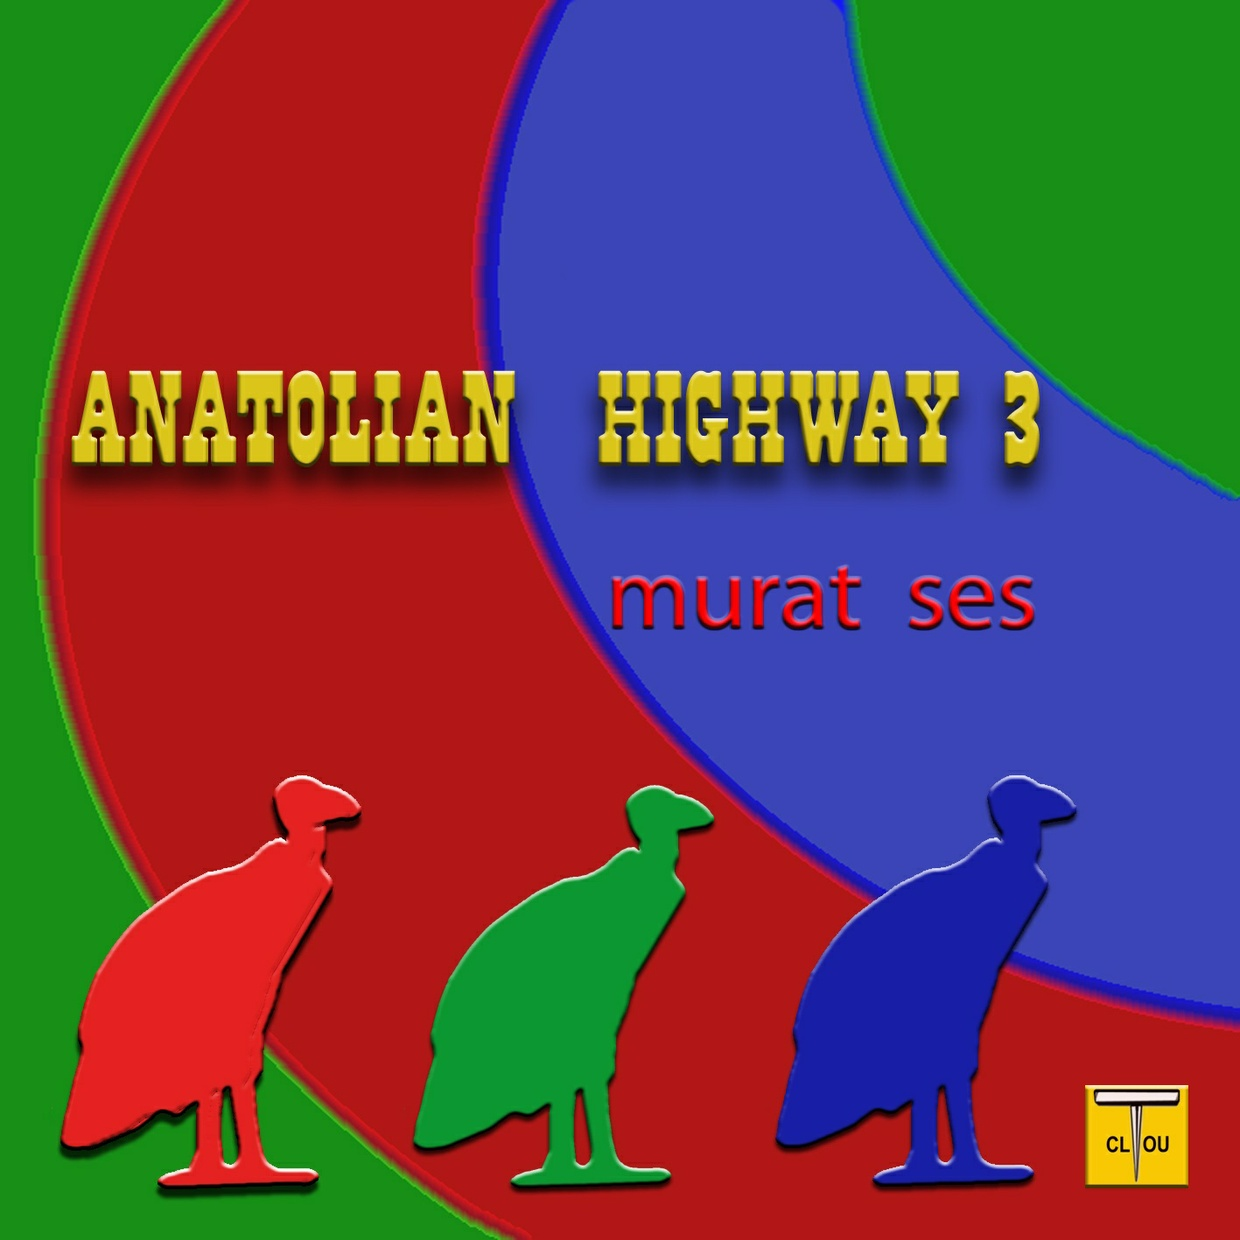 ANATOLIAN HIGHWAY 3 Maxi Single by Murat Ses (3 tracks) Pre-Order Sale ! !